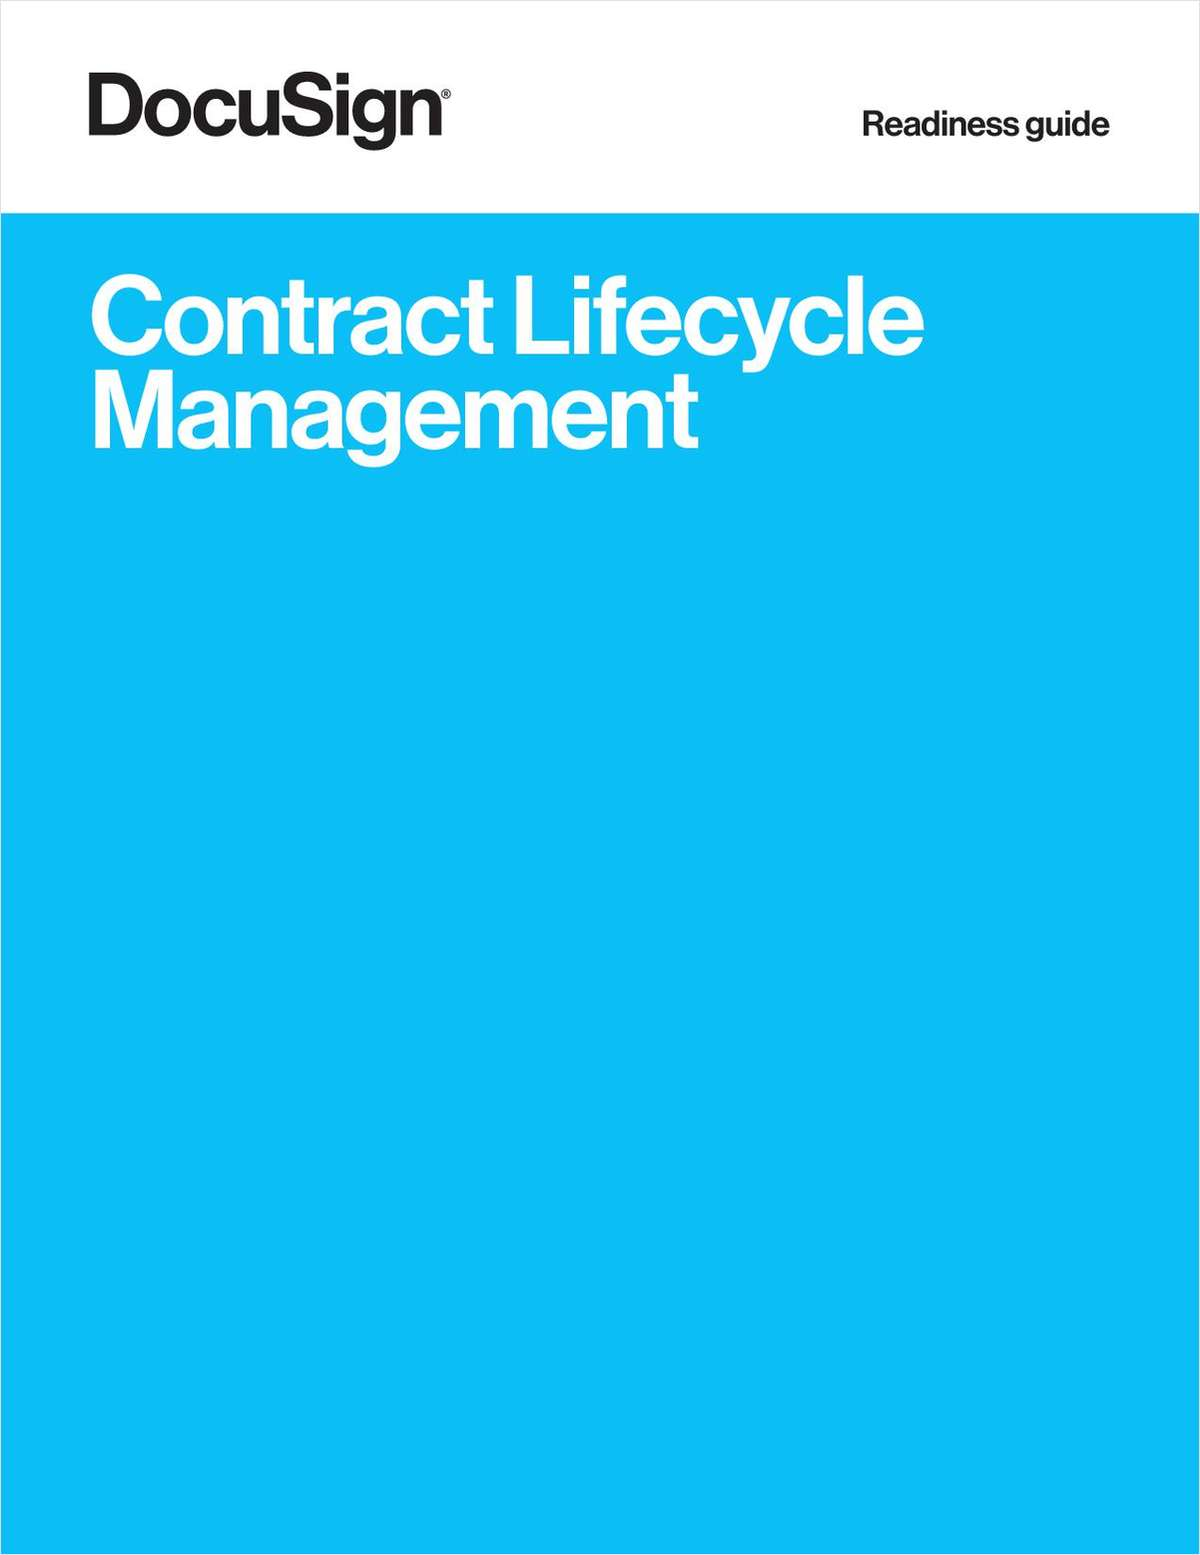 Readiness Guide: Contract Lifecycle Management